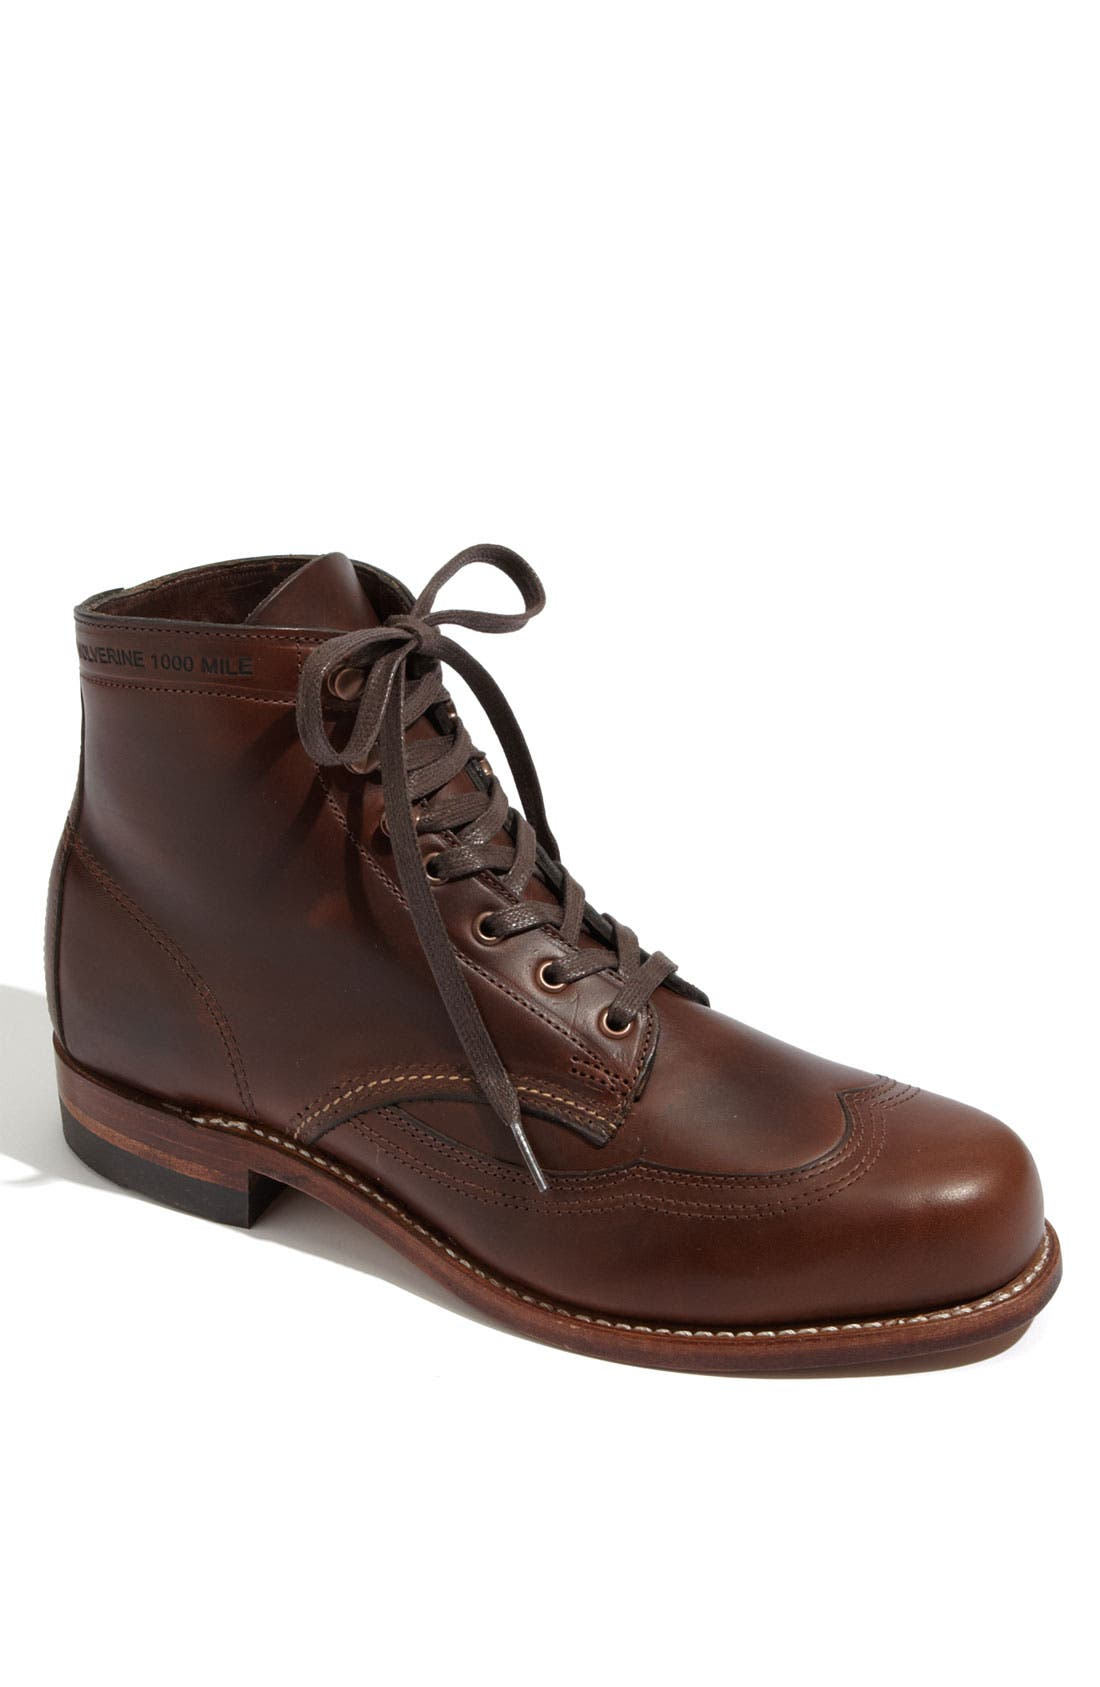 Alternate Image 1 Selected - Wolverine '1000 Mile - Addison' Wingtip Boot